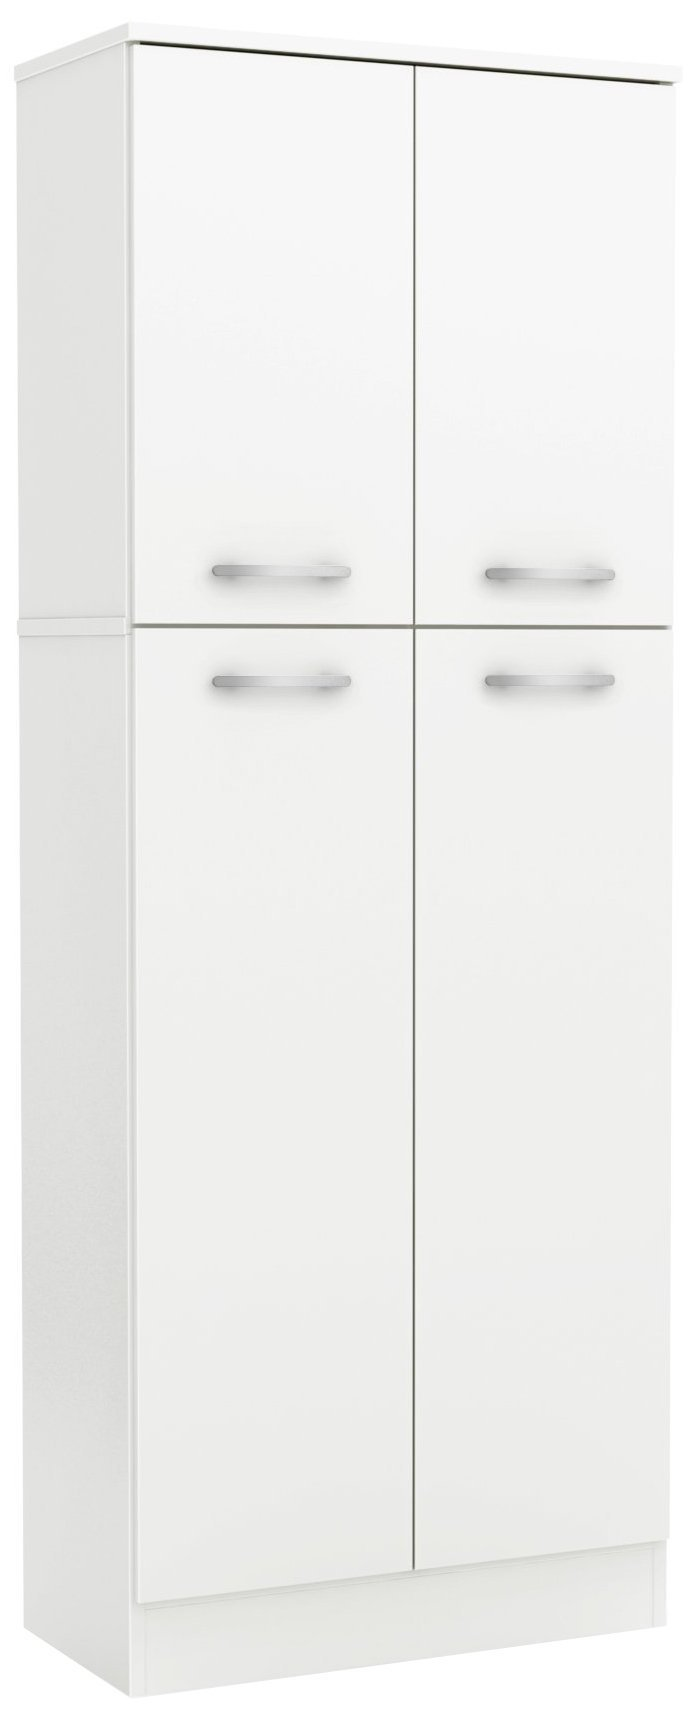 Discover south shore 4 door storage pantry with adjustable shelves pure white